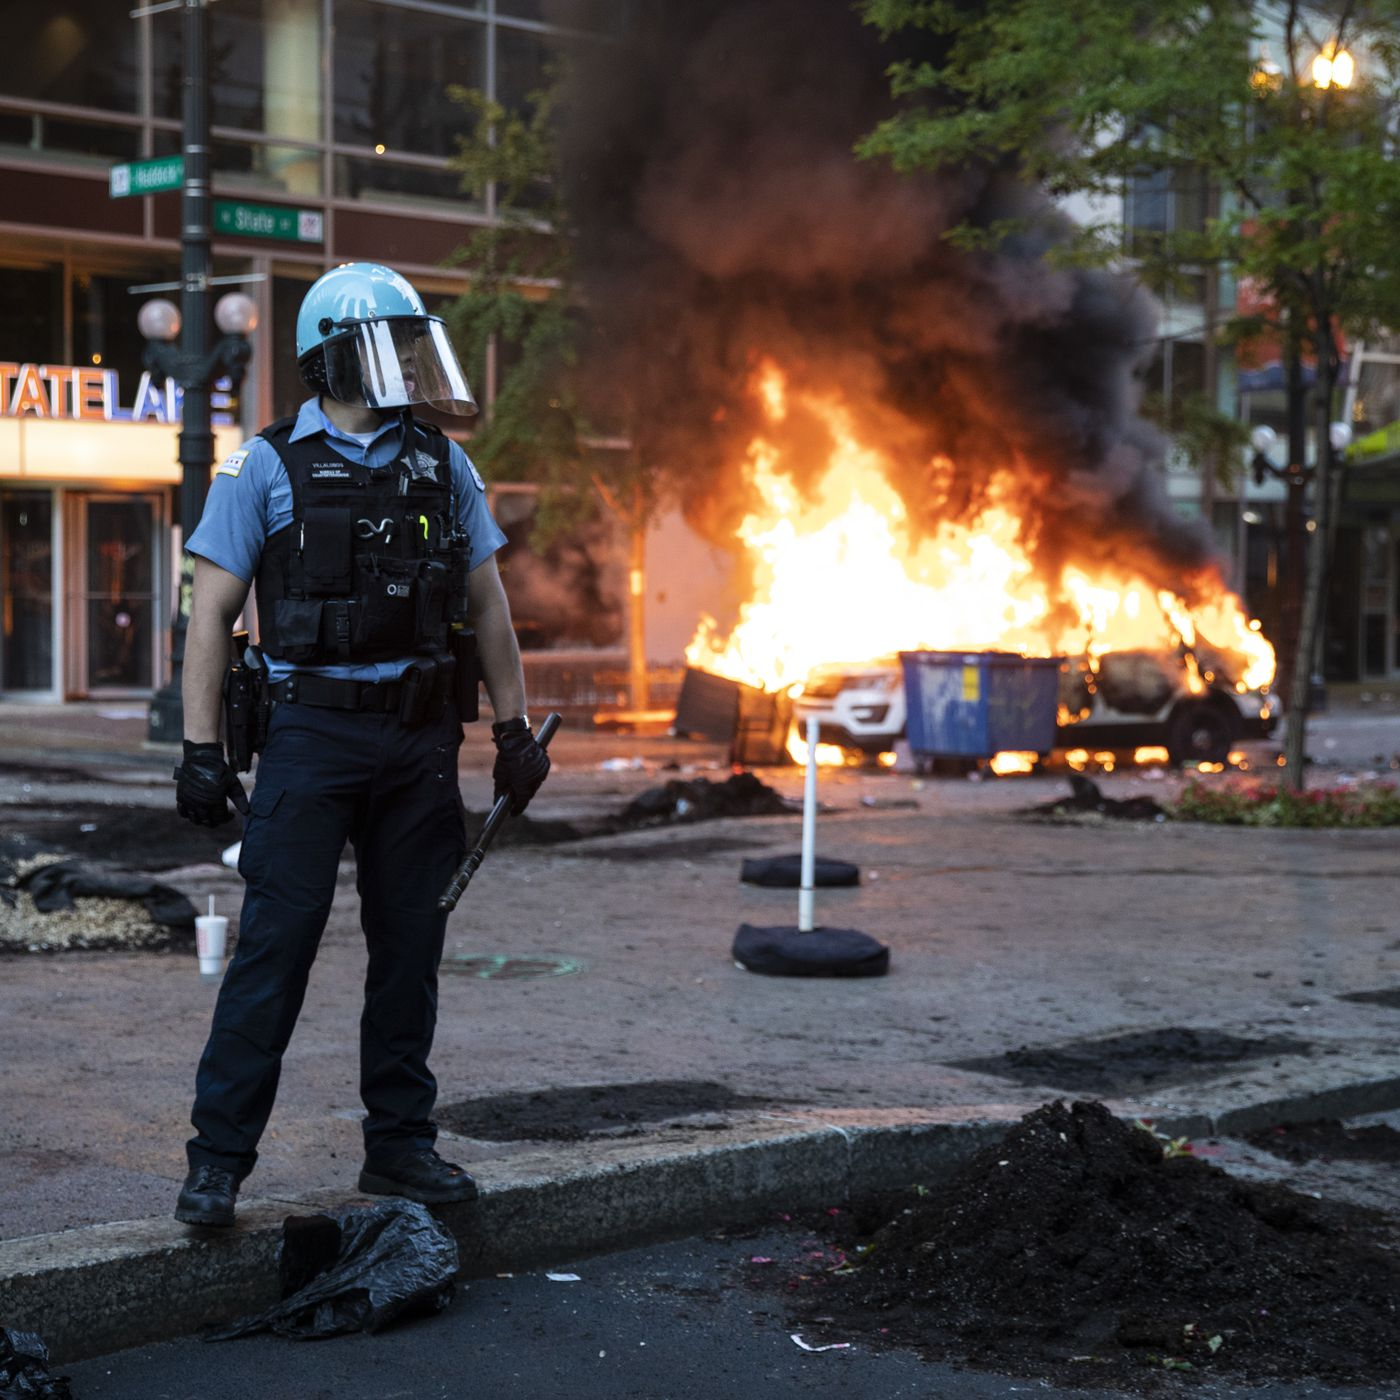 George Floyd protests: Officials blame differing groups of 'outsiders' for violence - Chicago Sun-Times